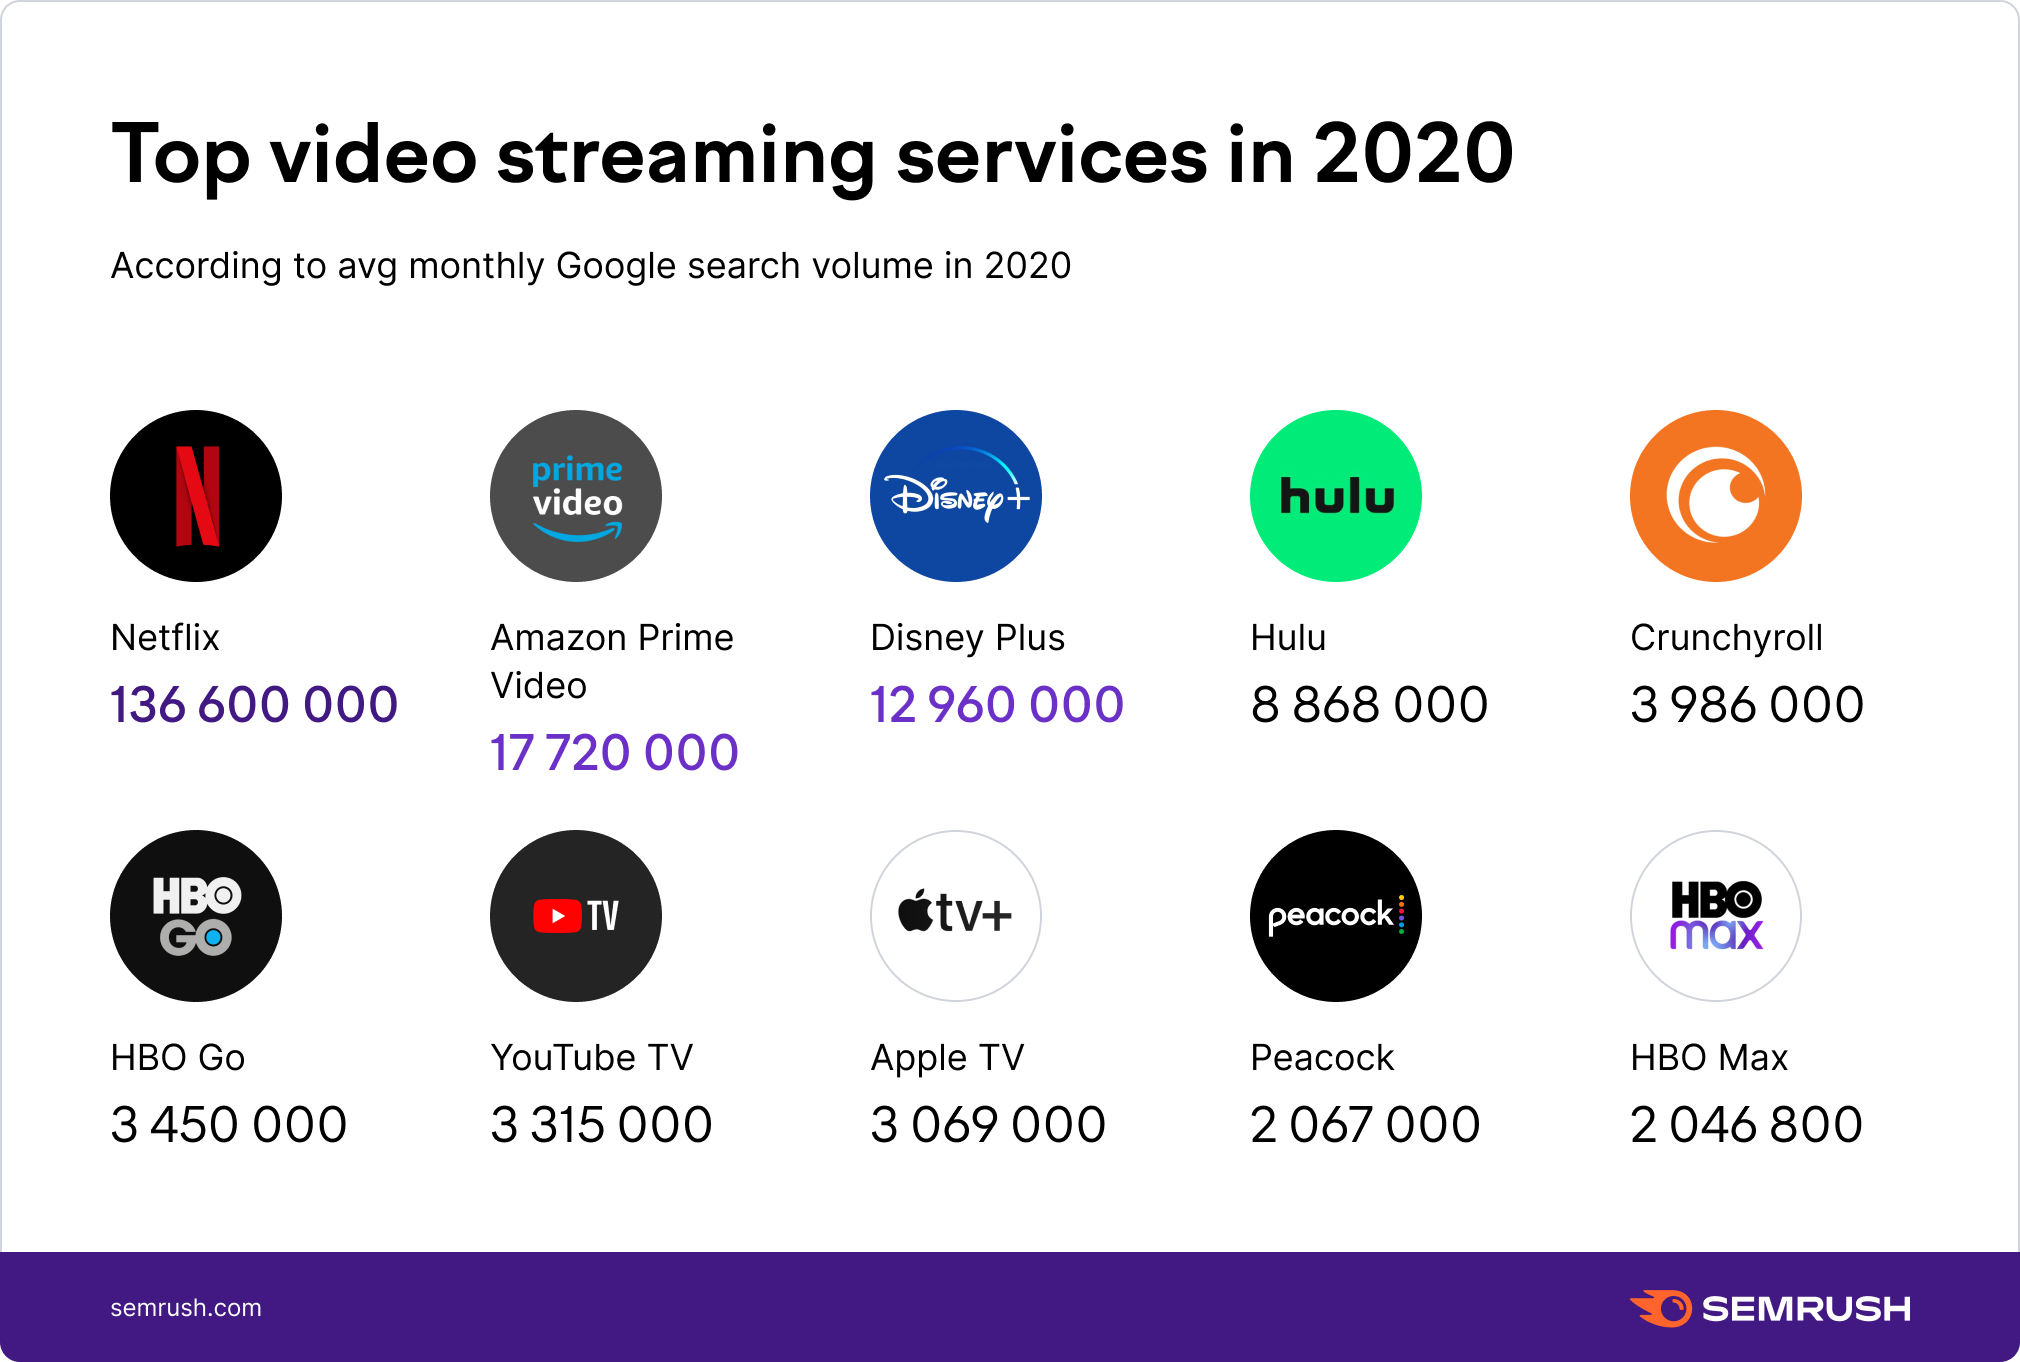 Top video streaming services in 2020